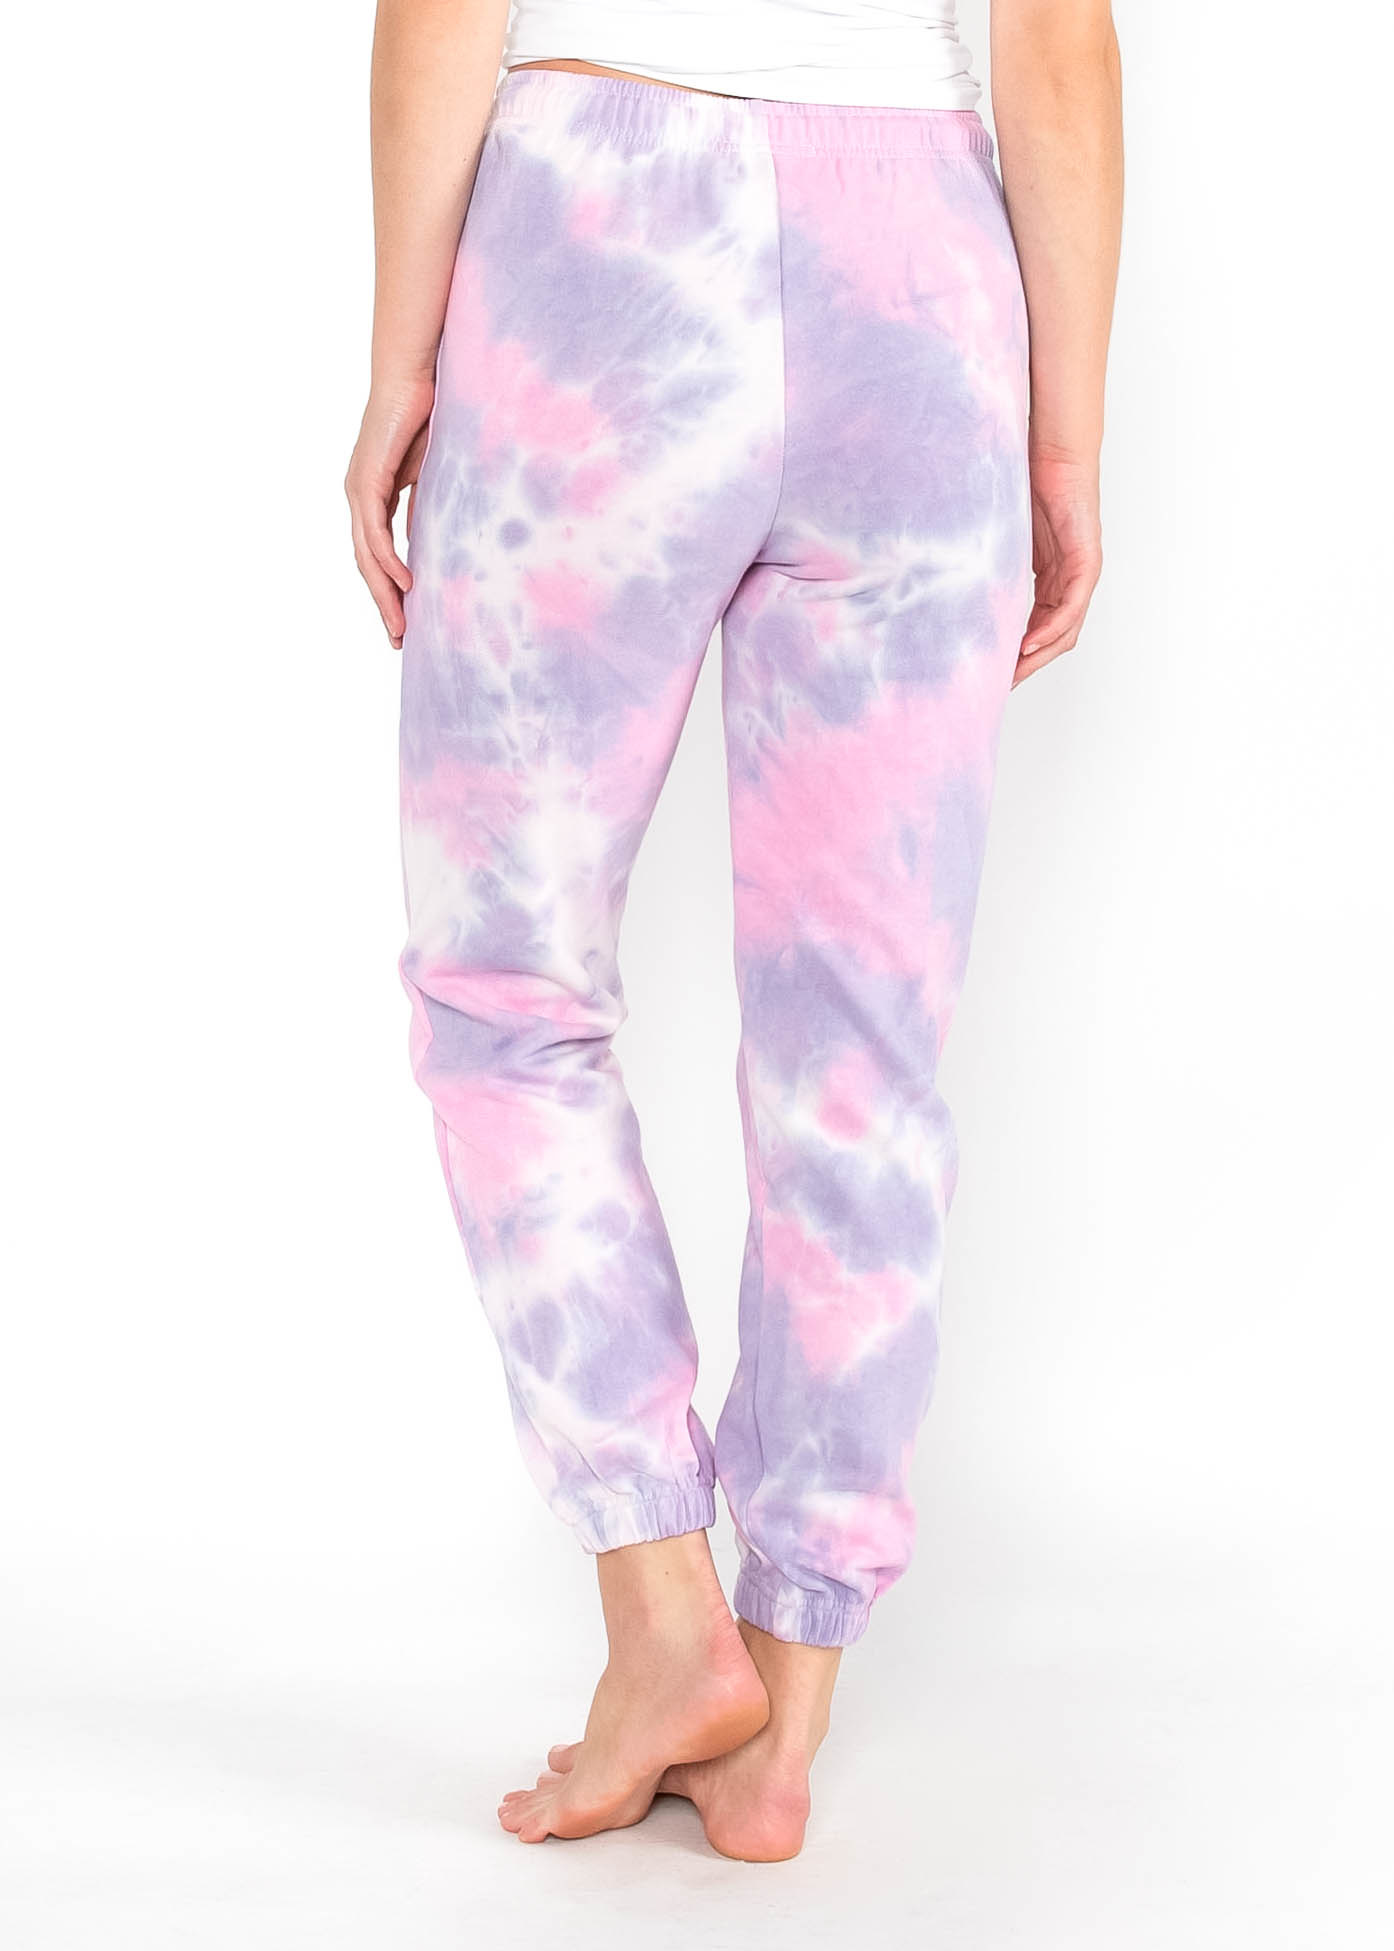 TOUCH THE SKY TIE DYE JOGGERS